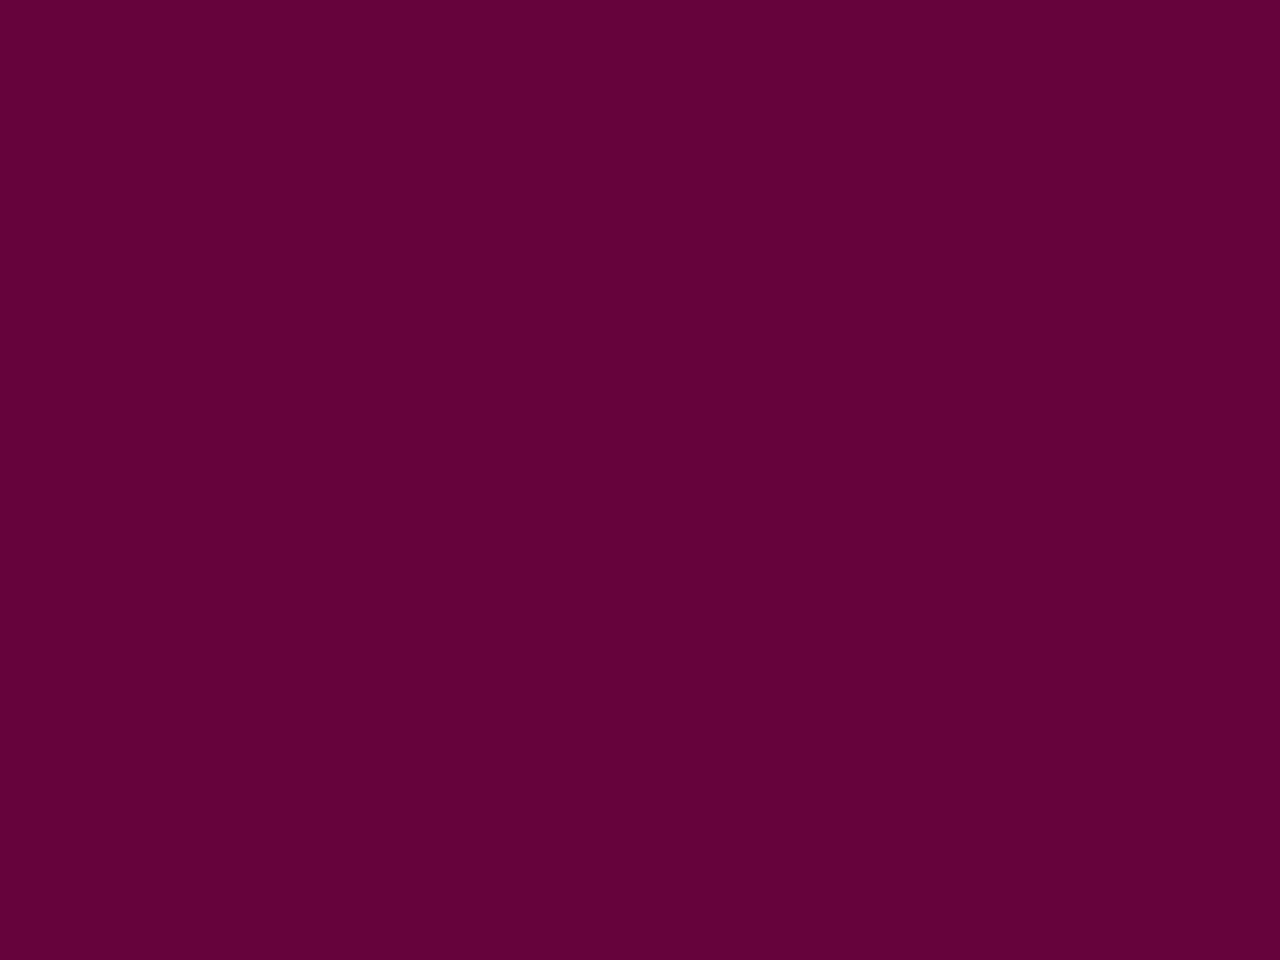 1280x960 Tyrian Purple Solid Color Background